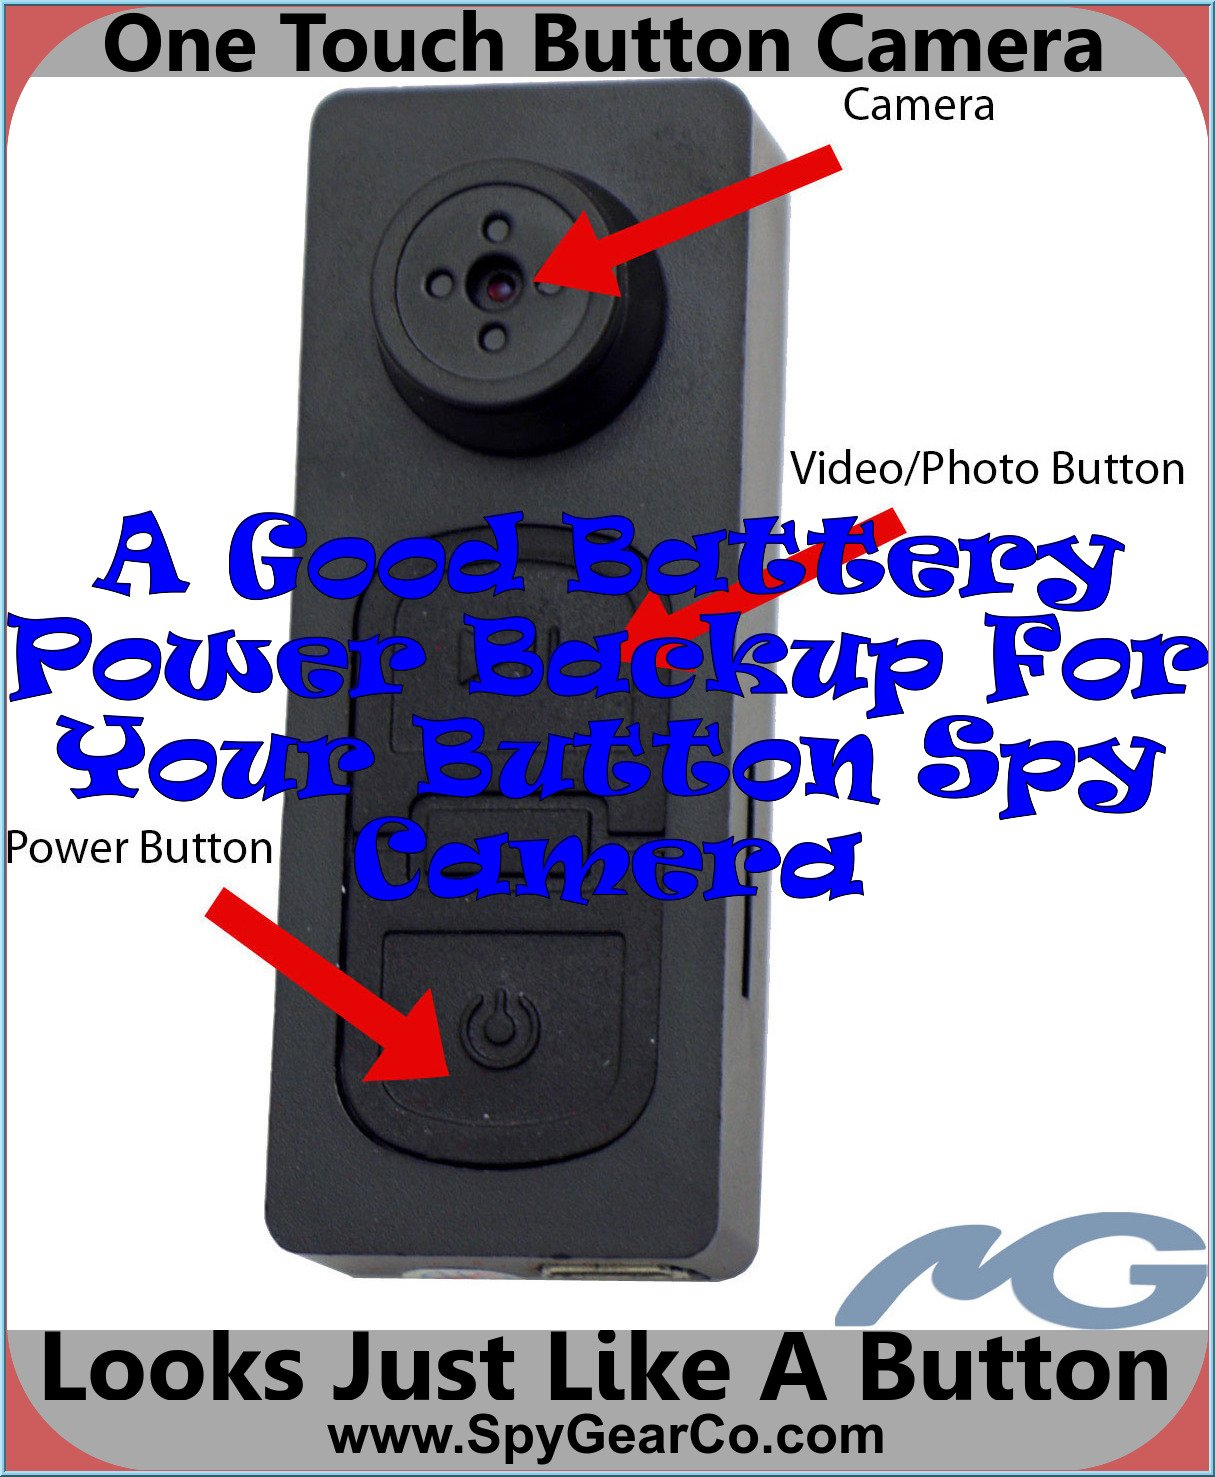 One Touch Button Camera